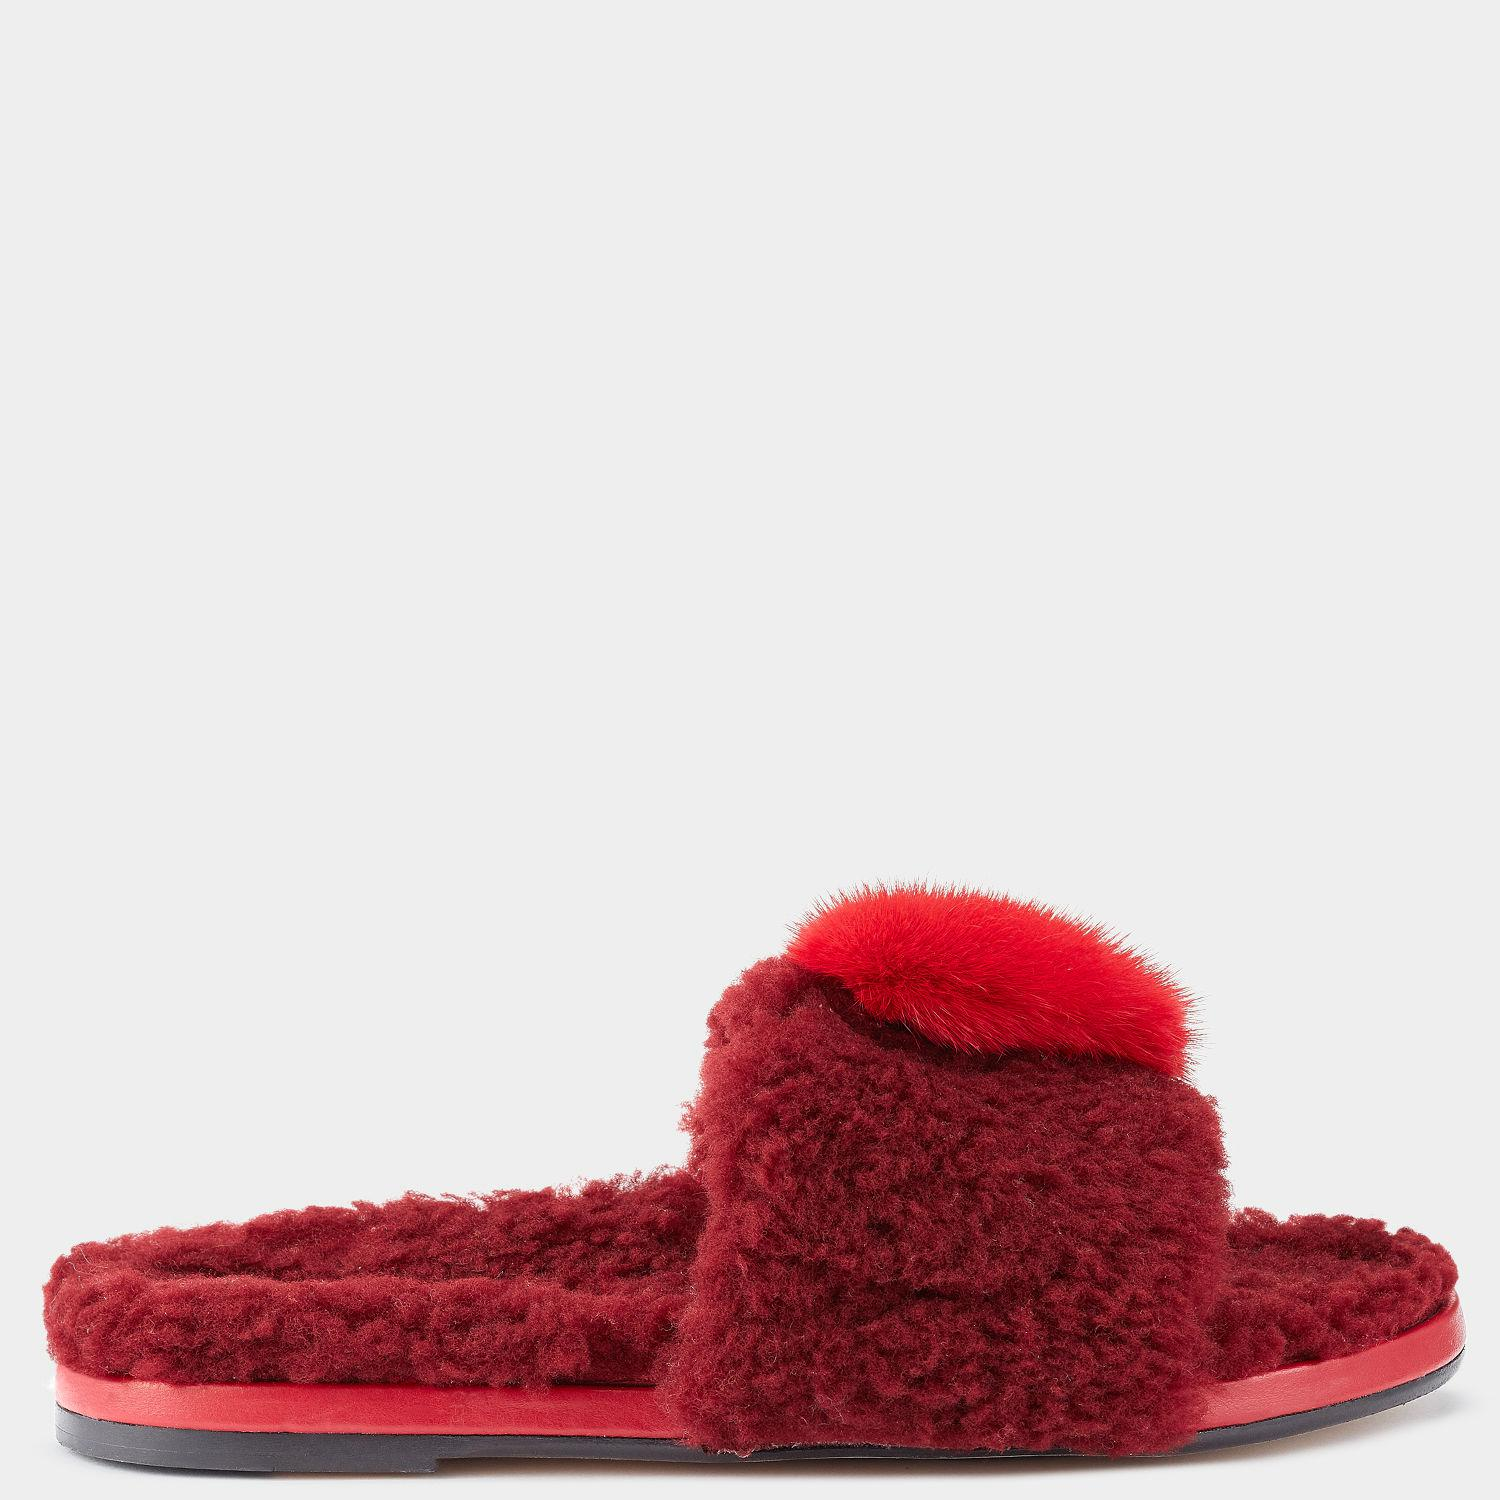 Givenchy Red Chubby Heart Slides 0ahbndf1